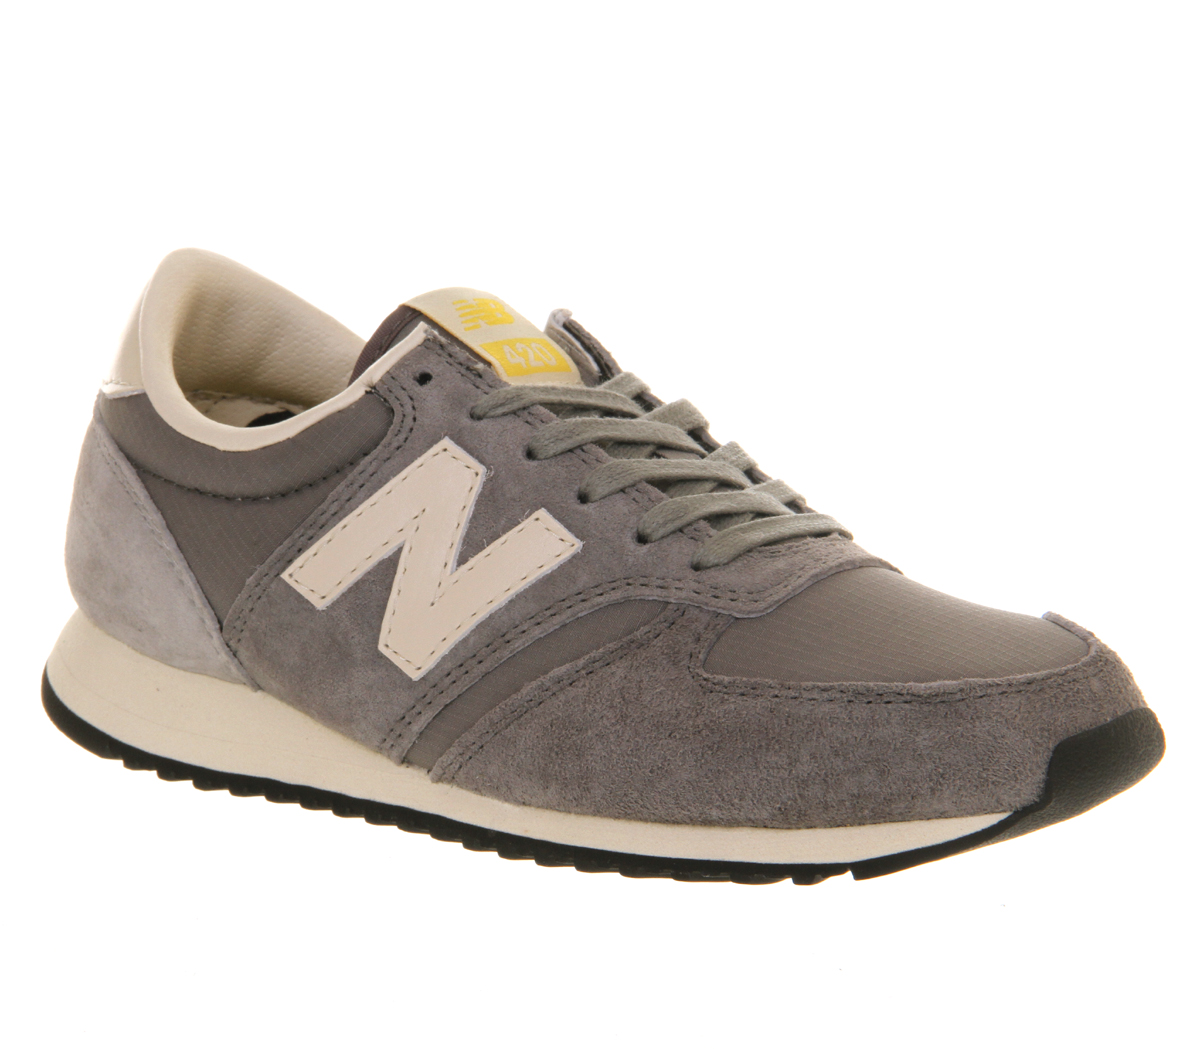 New-Balance-U420-GREY-Trainers-Shoes